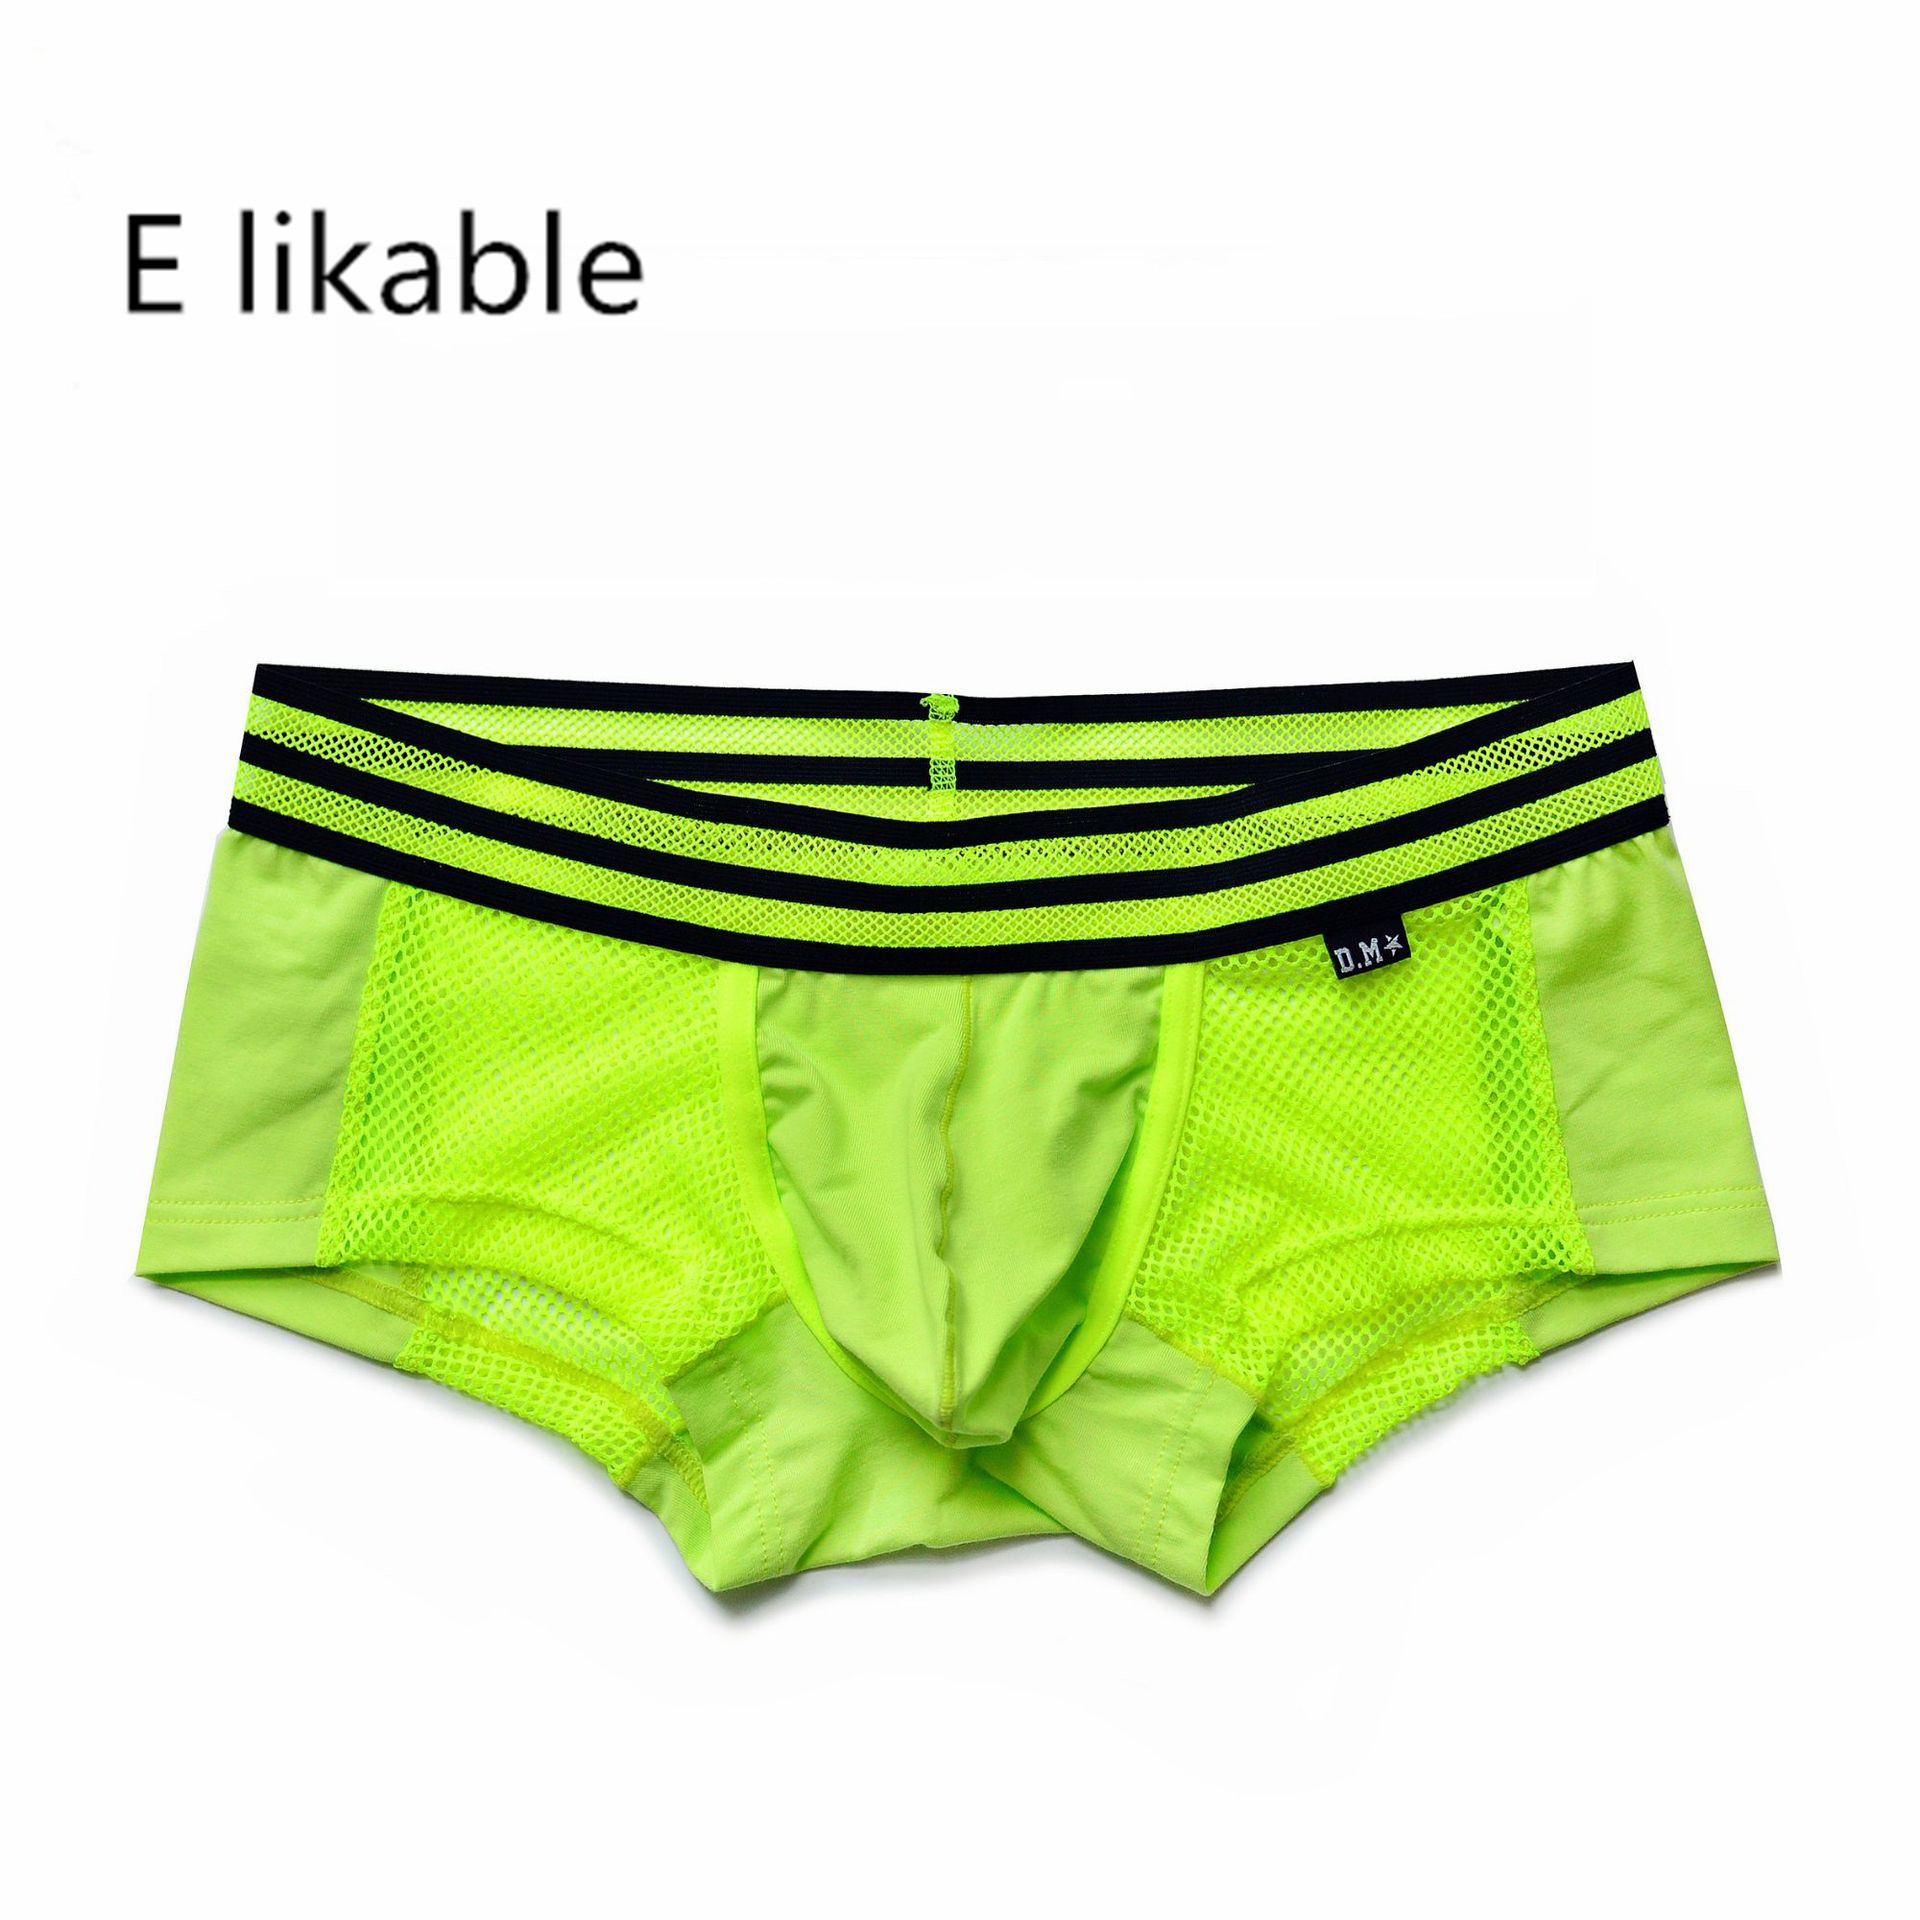 E Likable2020 European And American Youth New Men's Underwear Fashion Sexy Breathable Comfortable Low Waist Solid Color Boxer